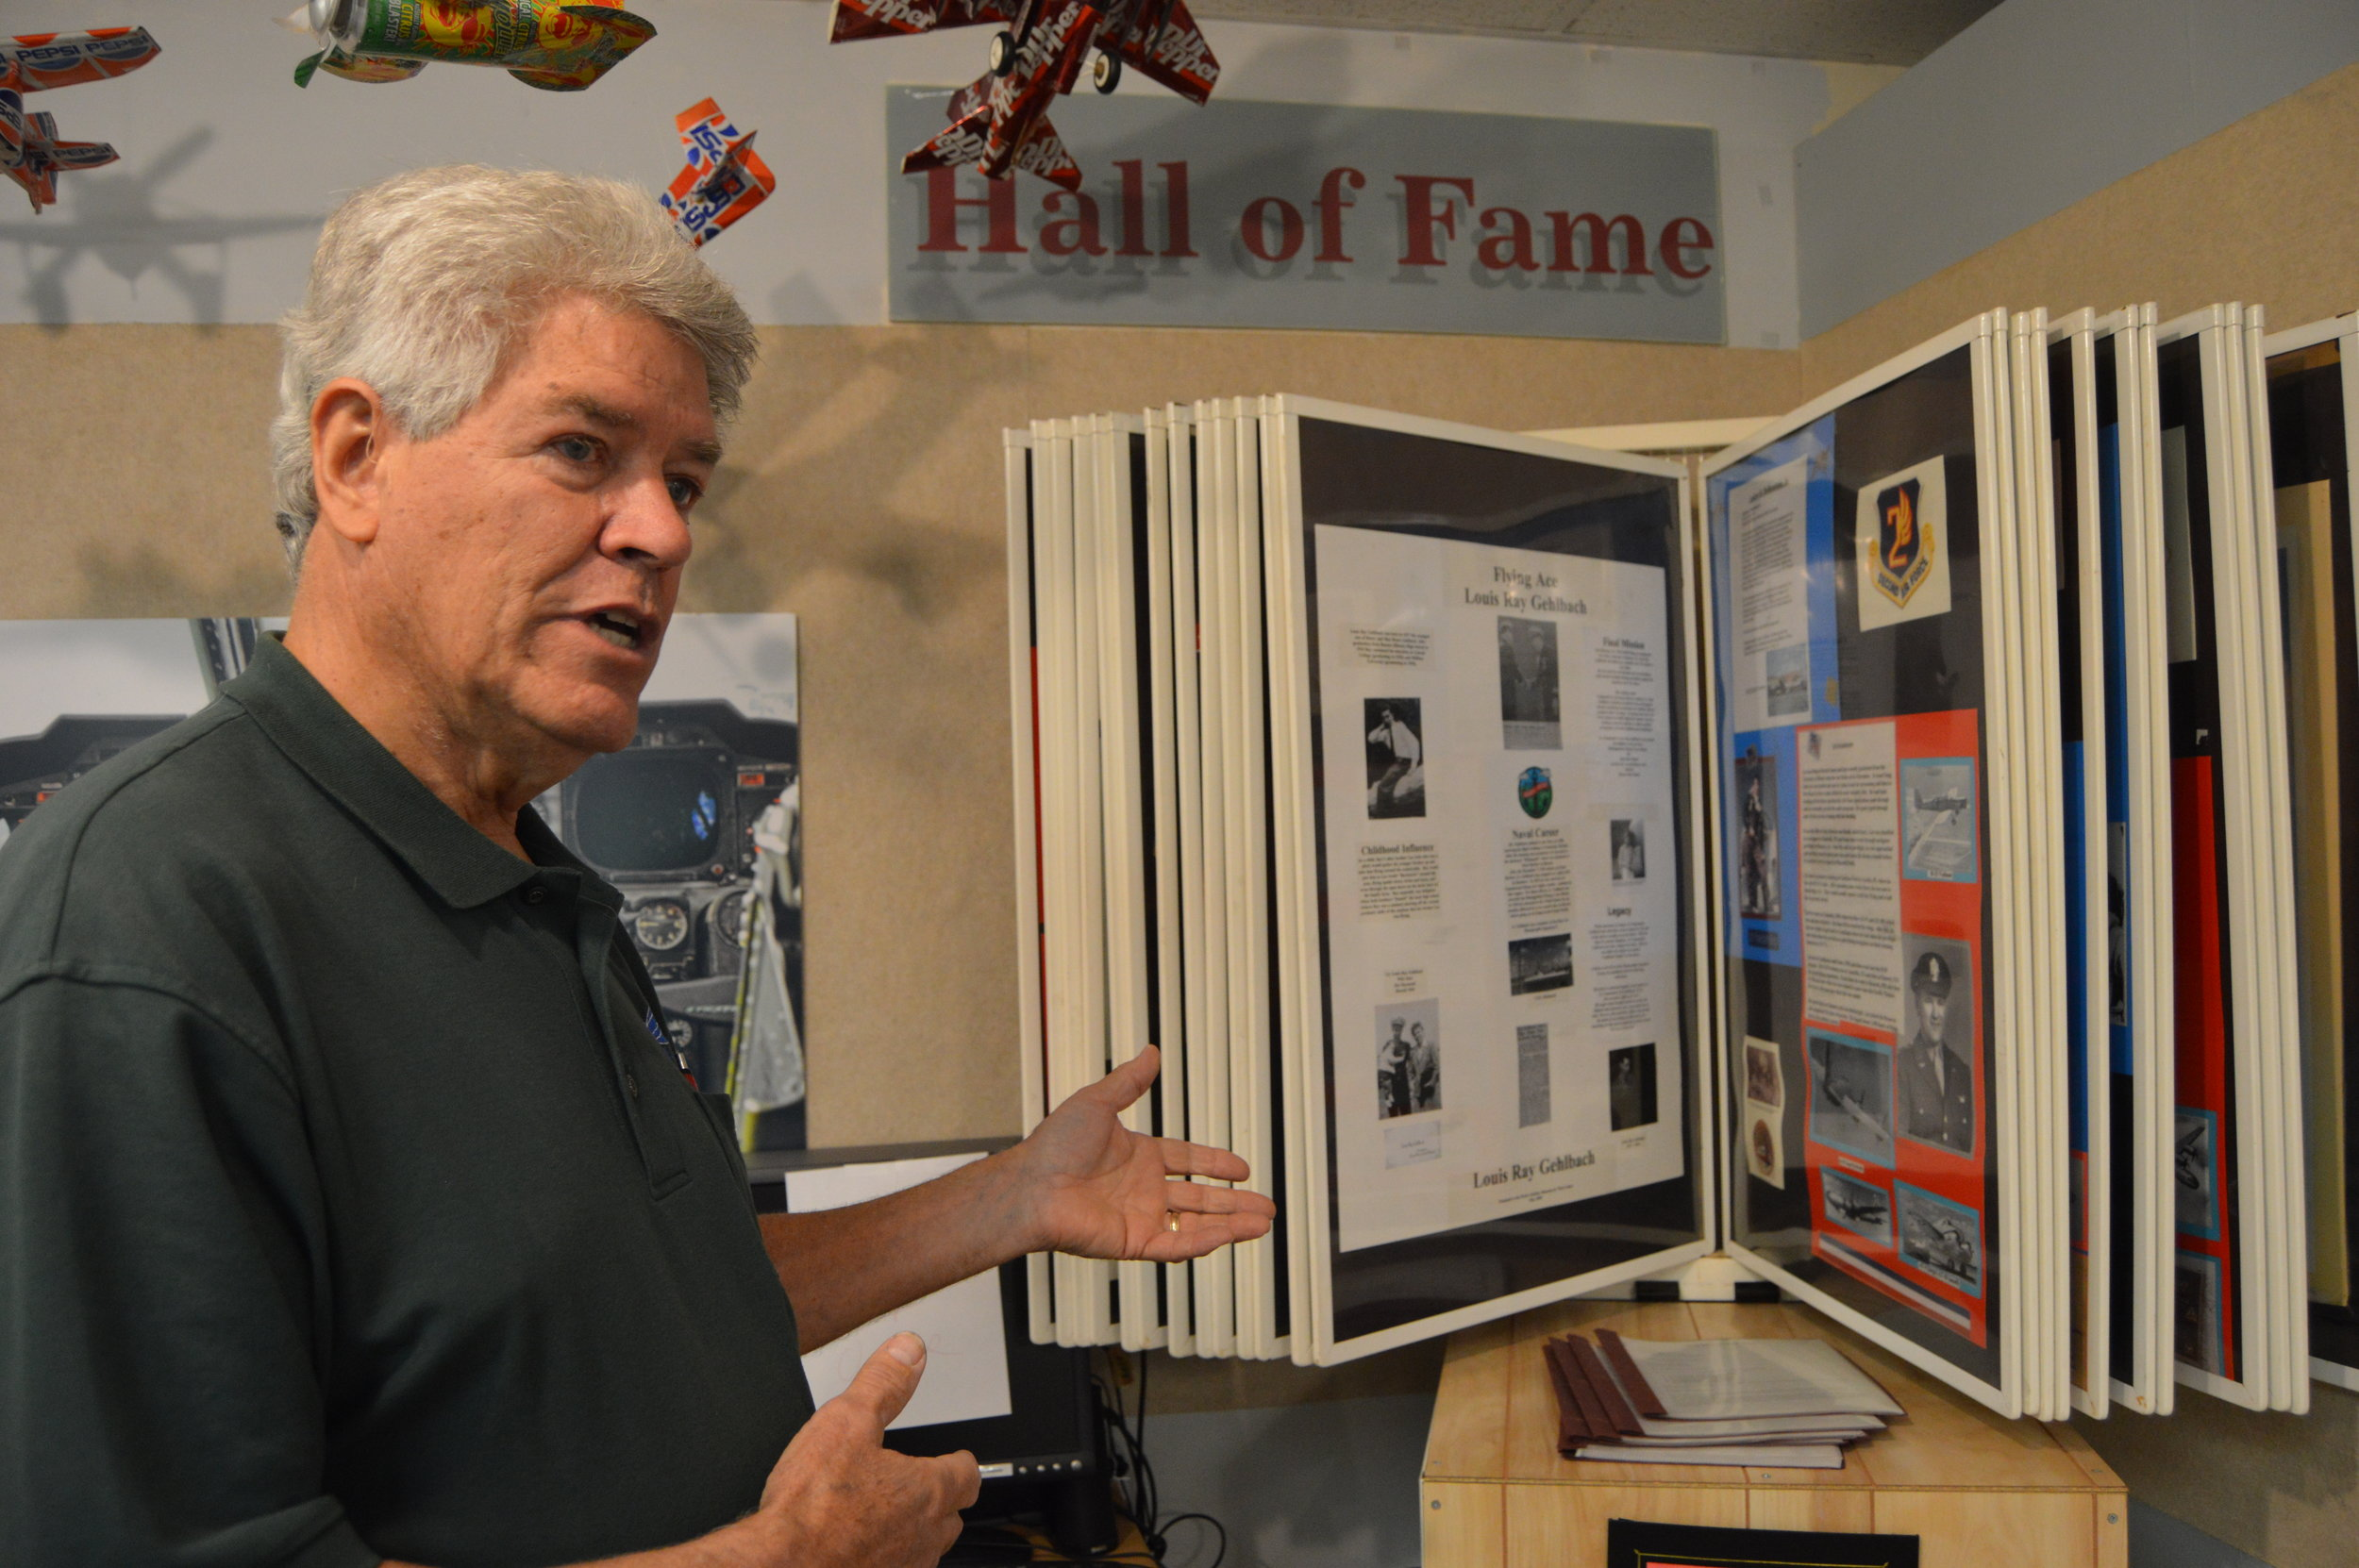 Prarie Aviation Museum President Doug Reeves shows the museum's Hall of Fame, a catalog of McLean County residents and their place in aviation history. (Photo: Breanna Grow/AdaptBN)